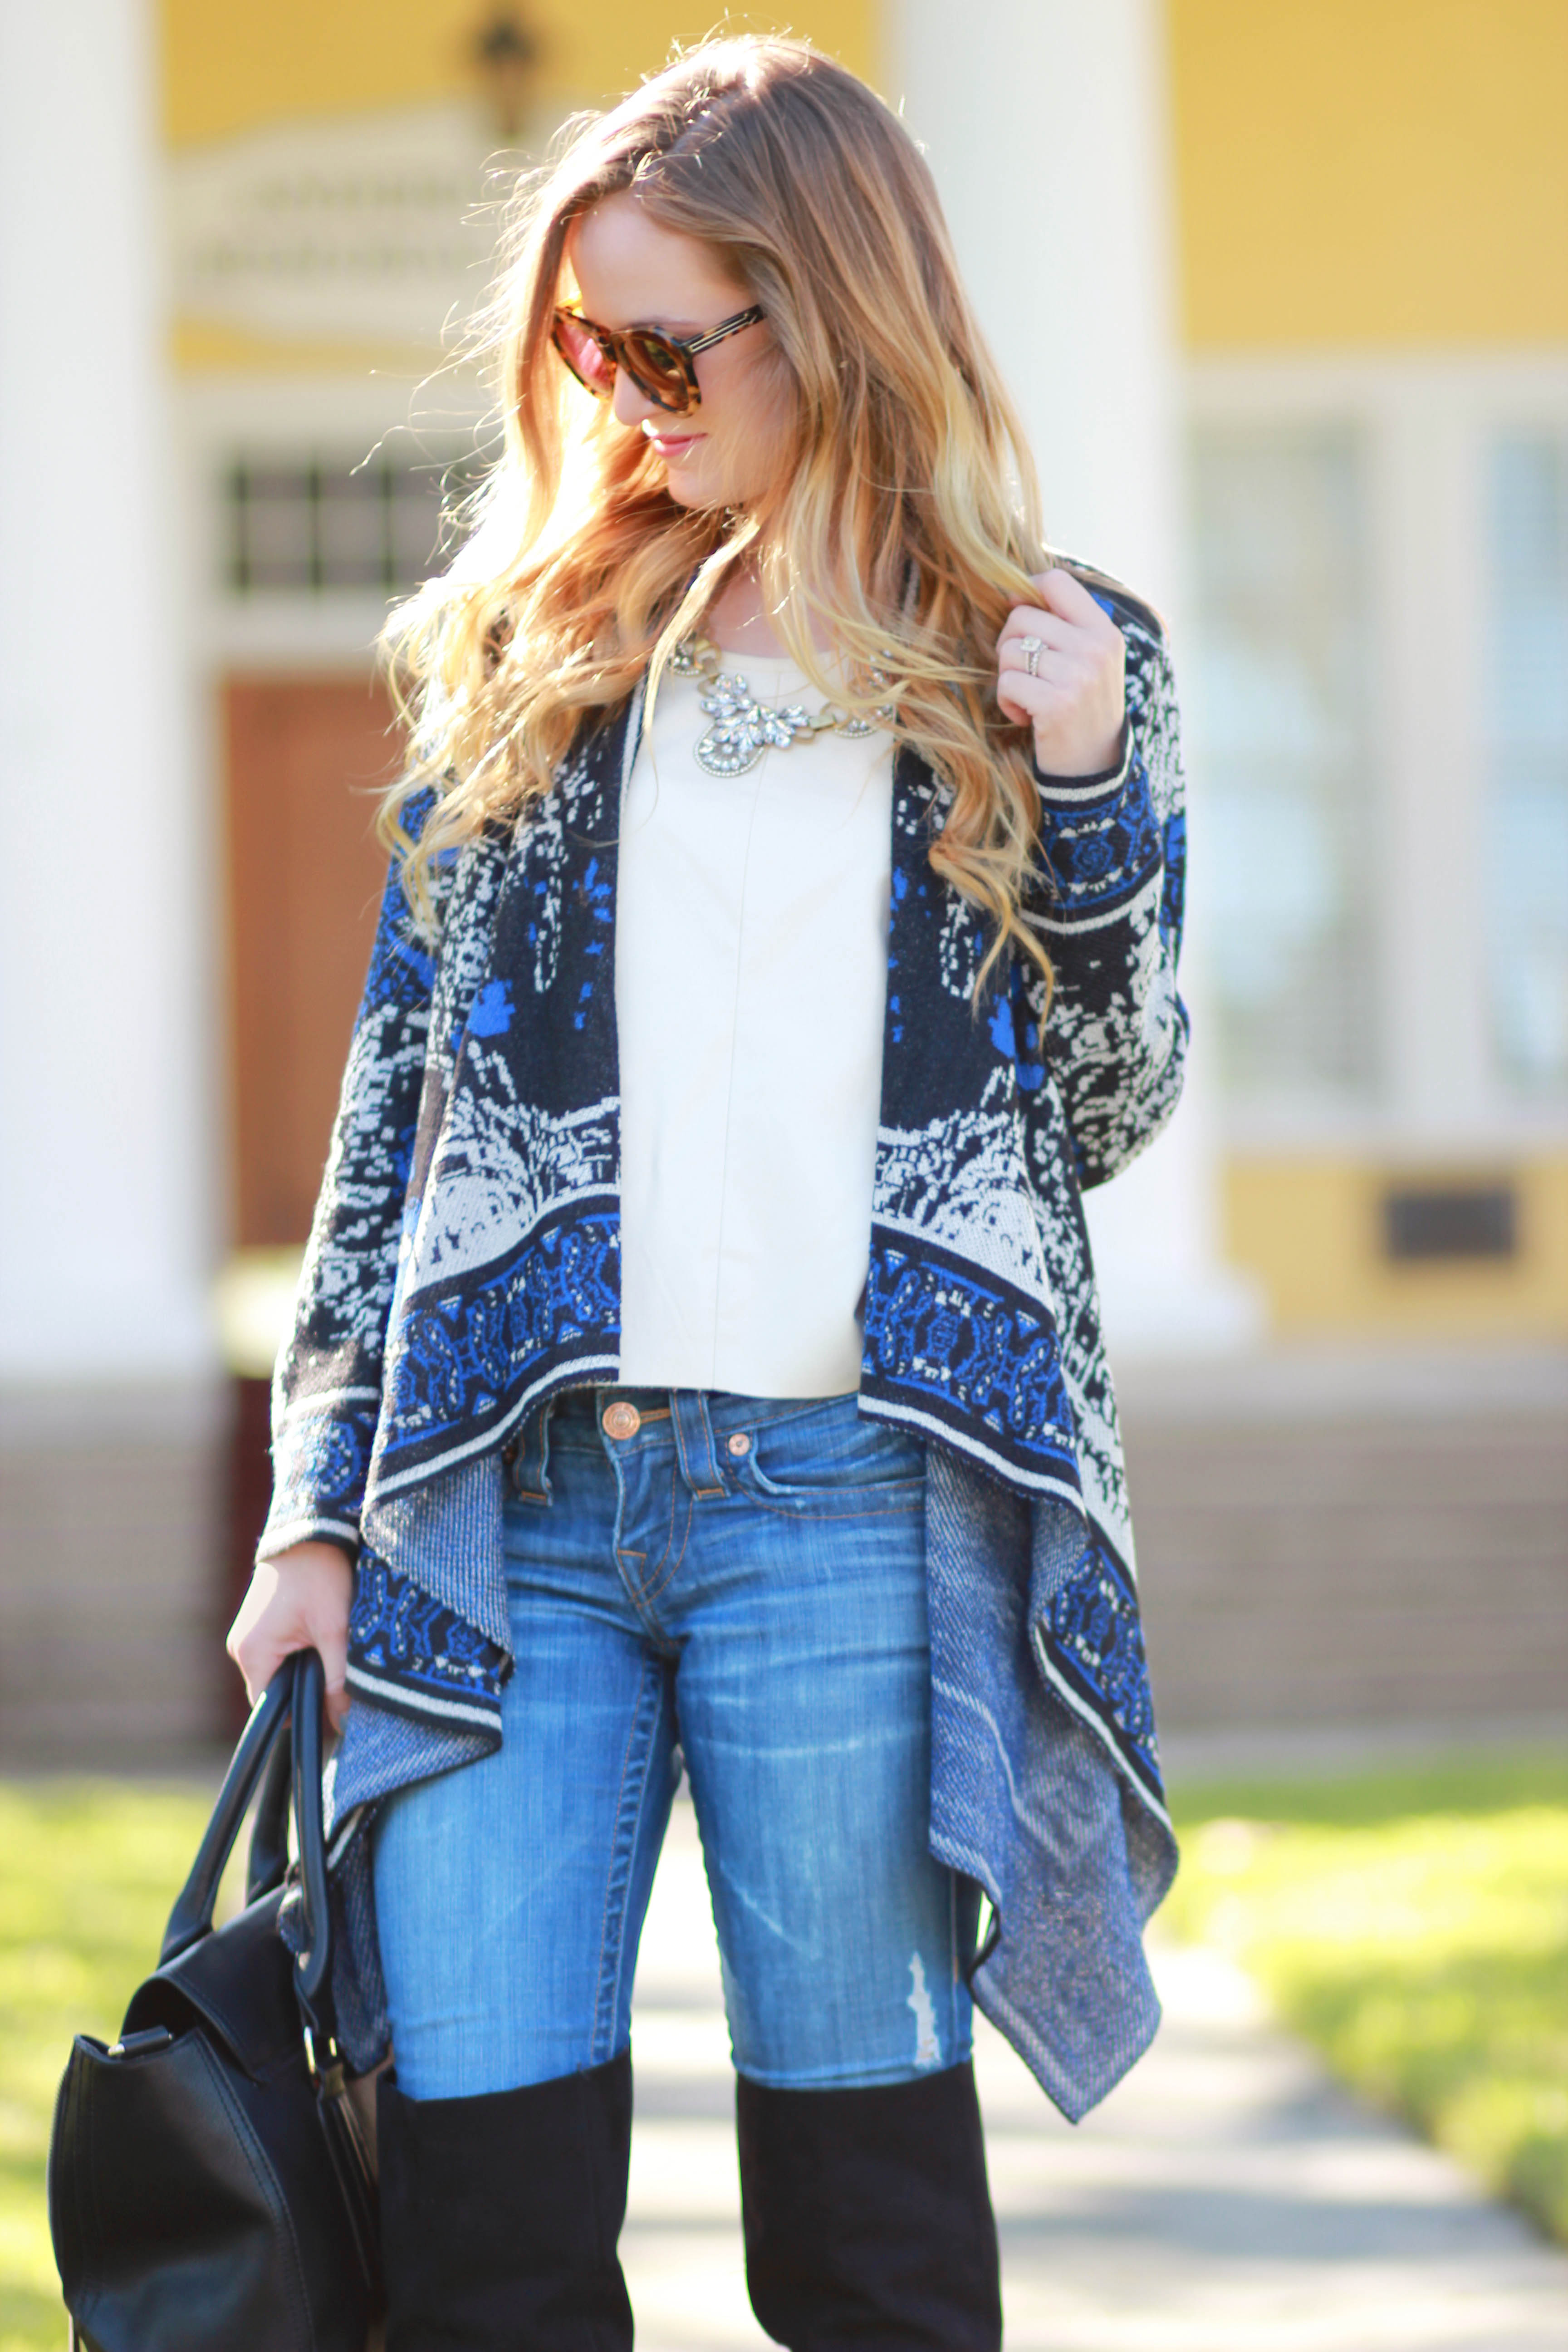 florida, orlando fashion blogger styles sugar love boutique cardigan, target over the knee boots and karen walker number one sunglasses for a casual fall outfit